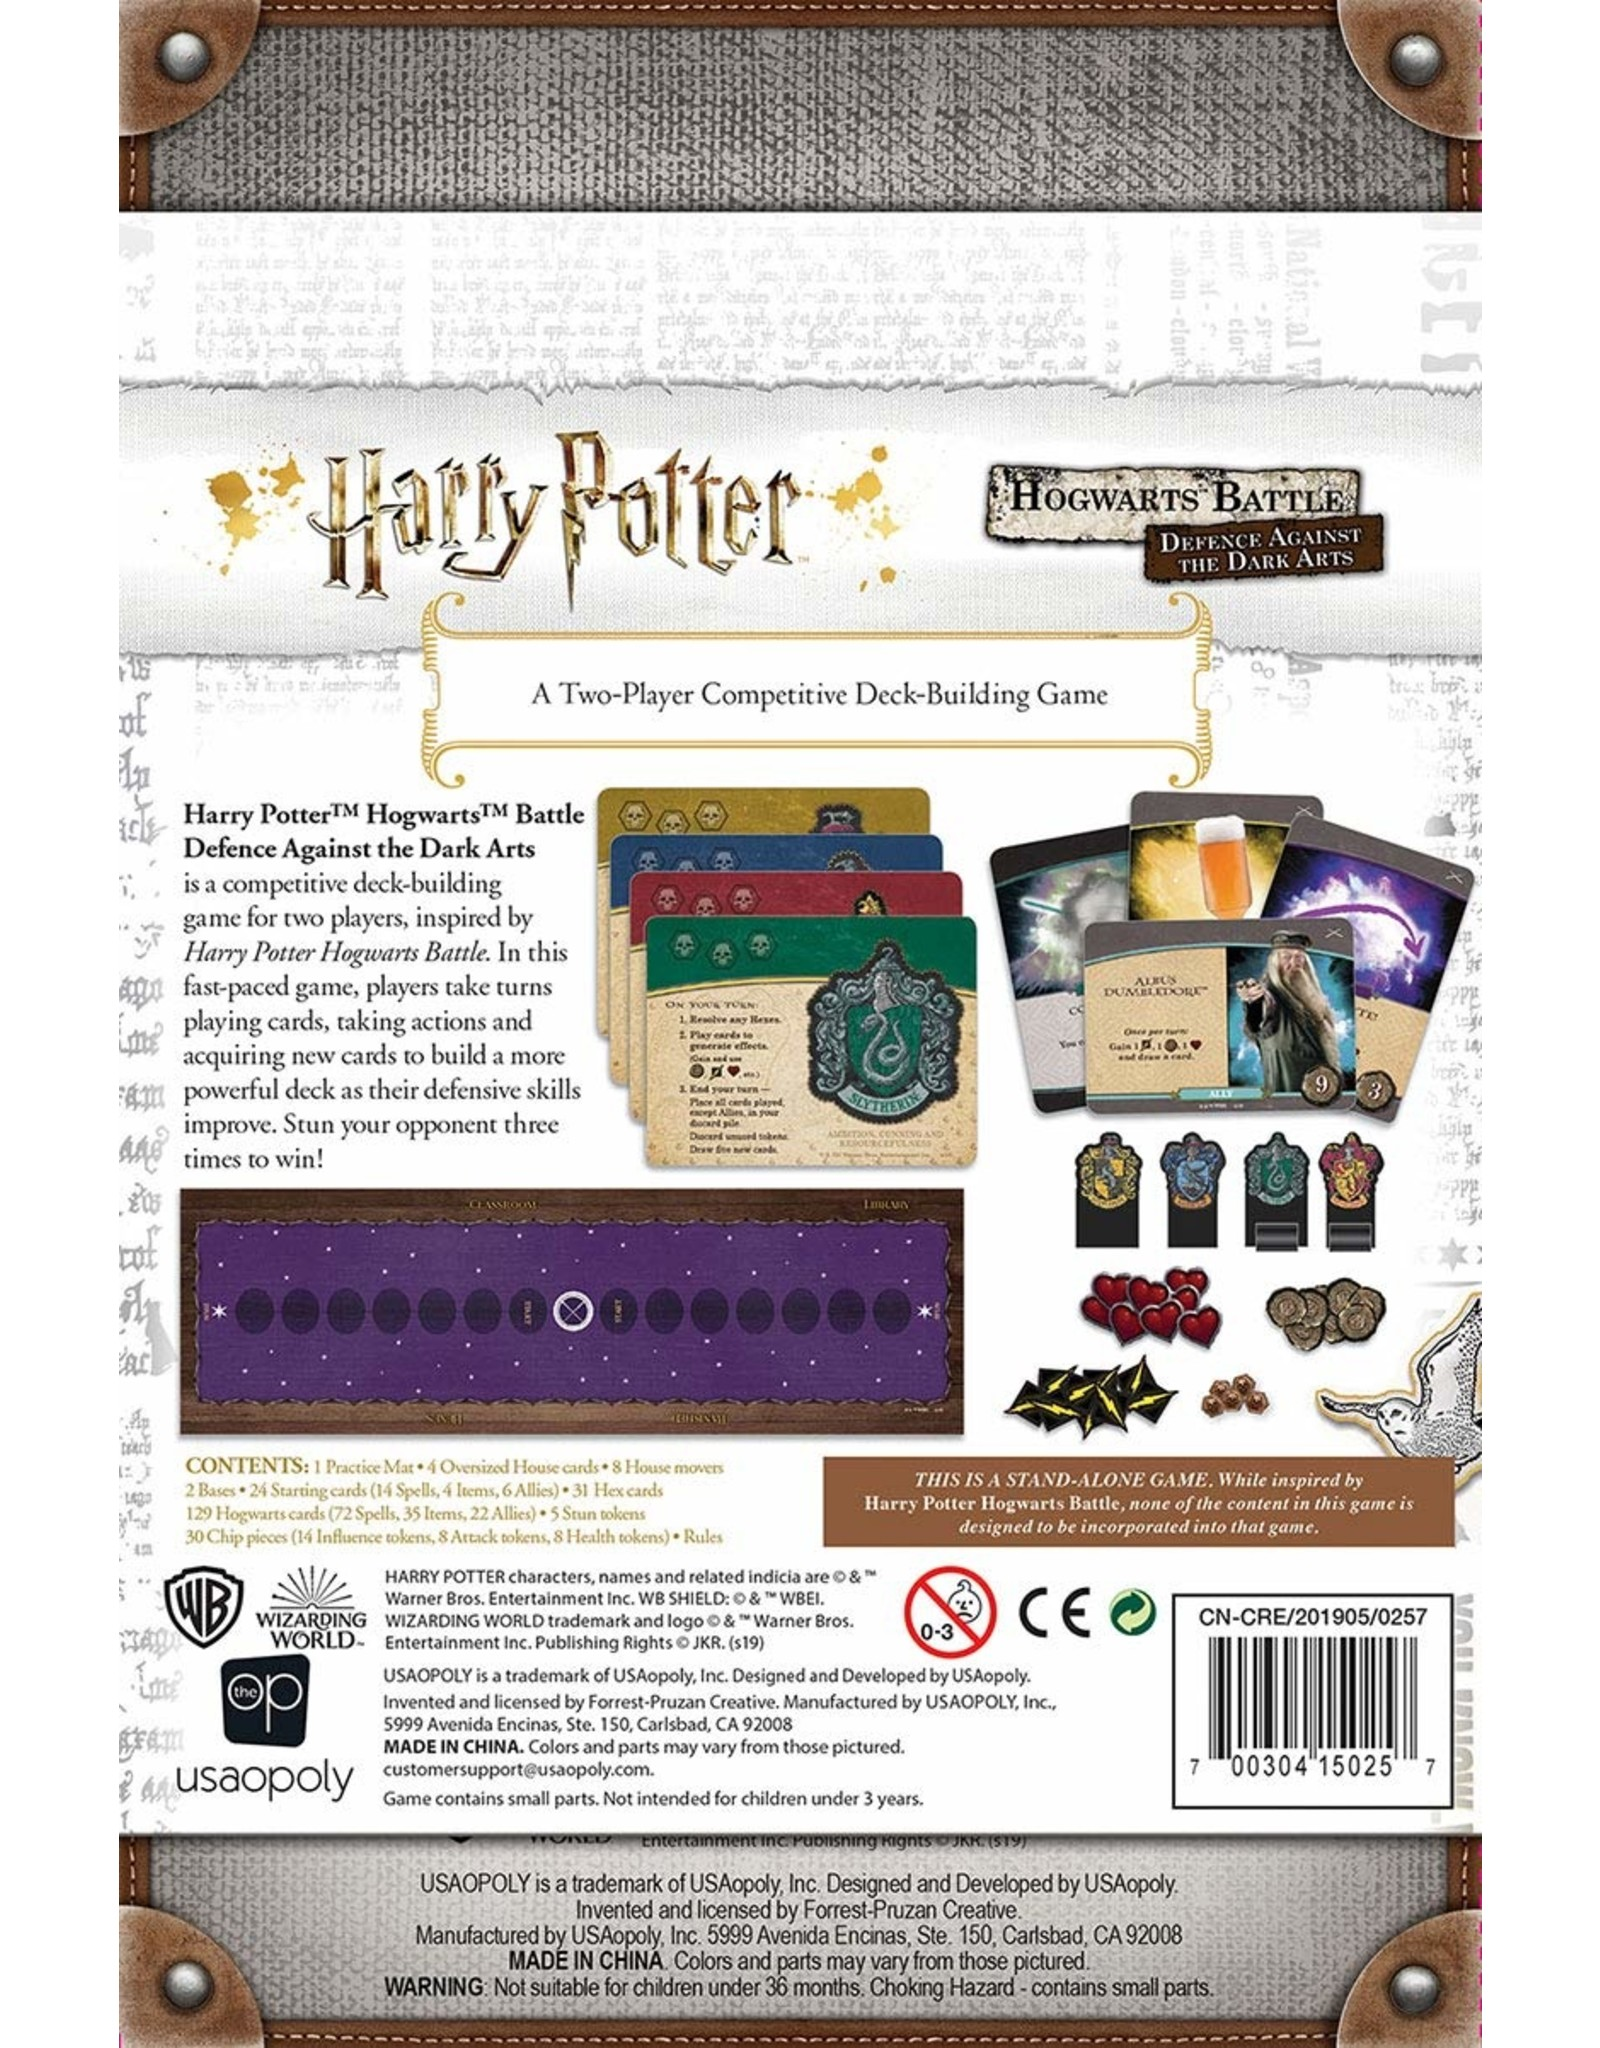 Harry Potter Defense Against The Dark Arts Deck Building Game